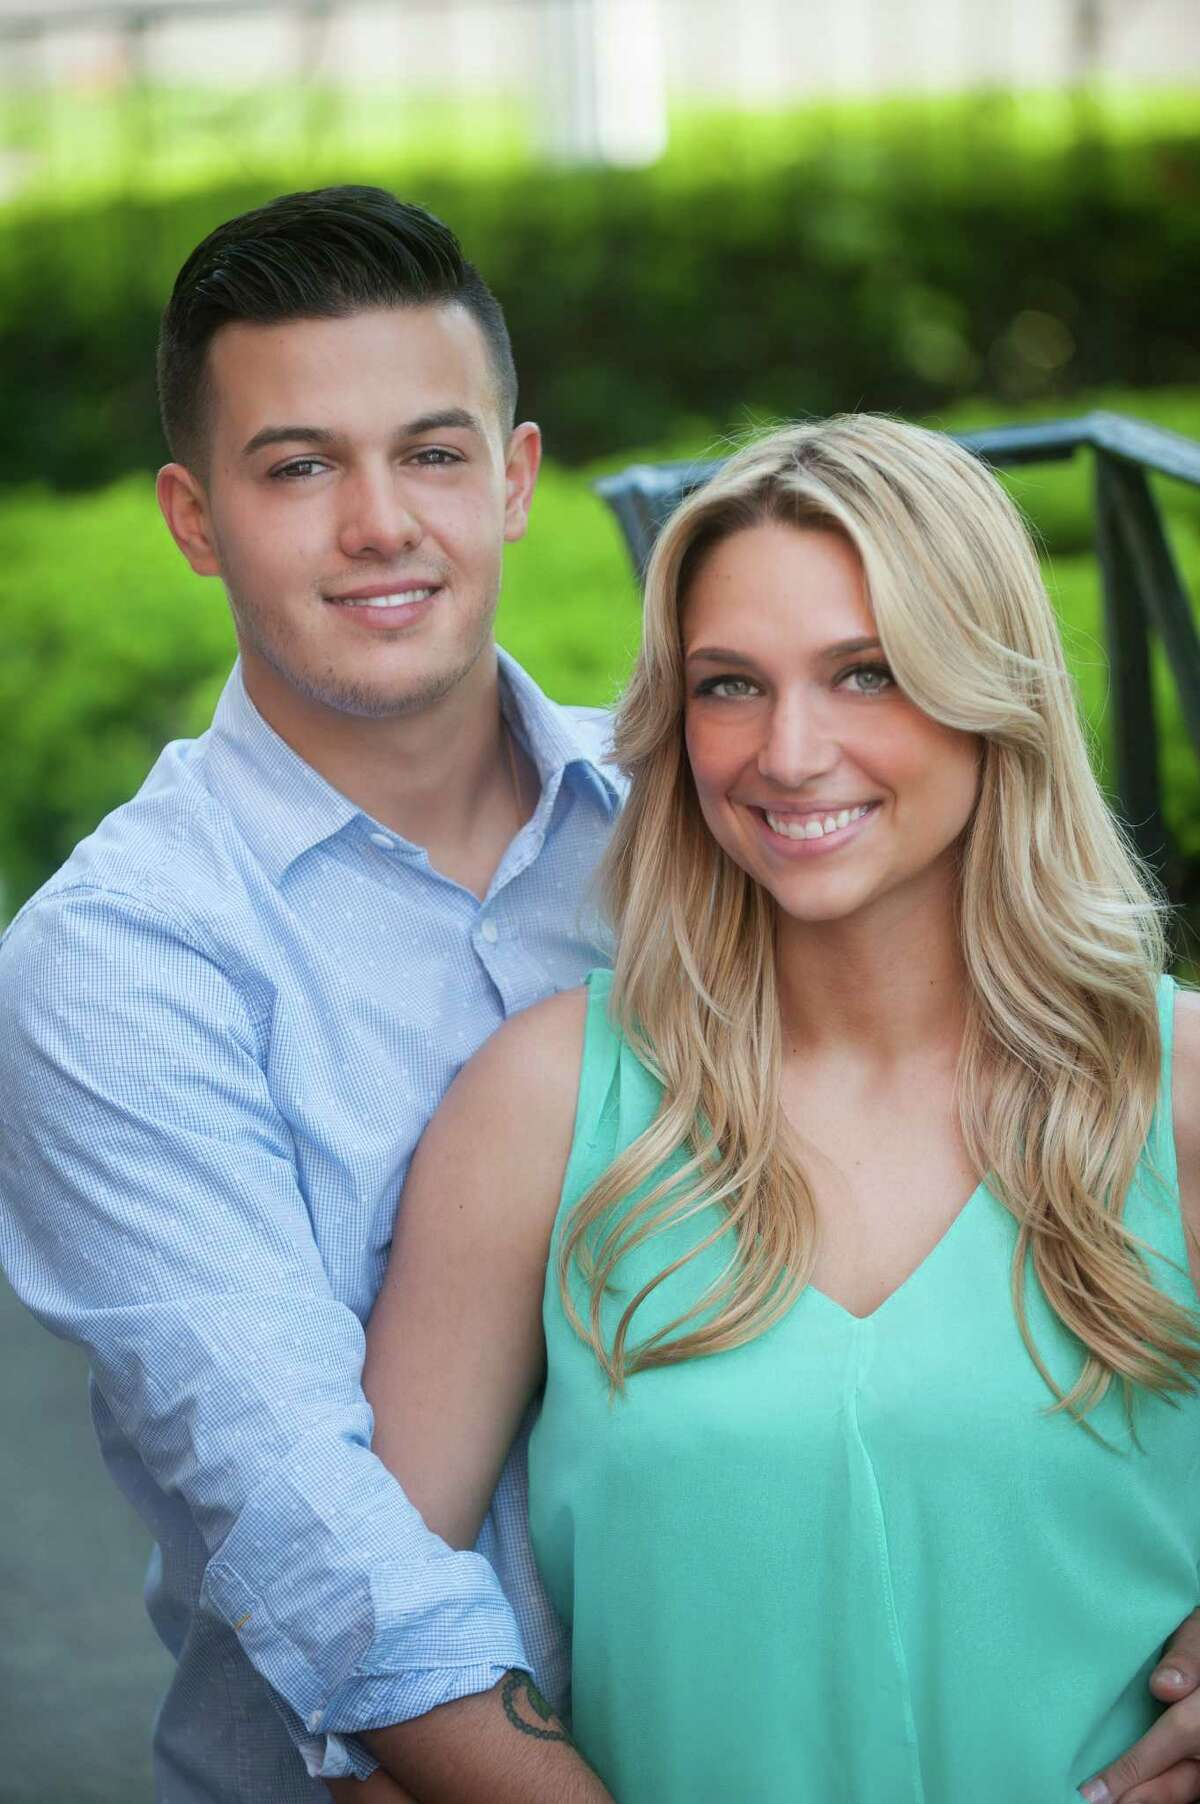 Kelsey and Alex's Engagement Session!